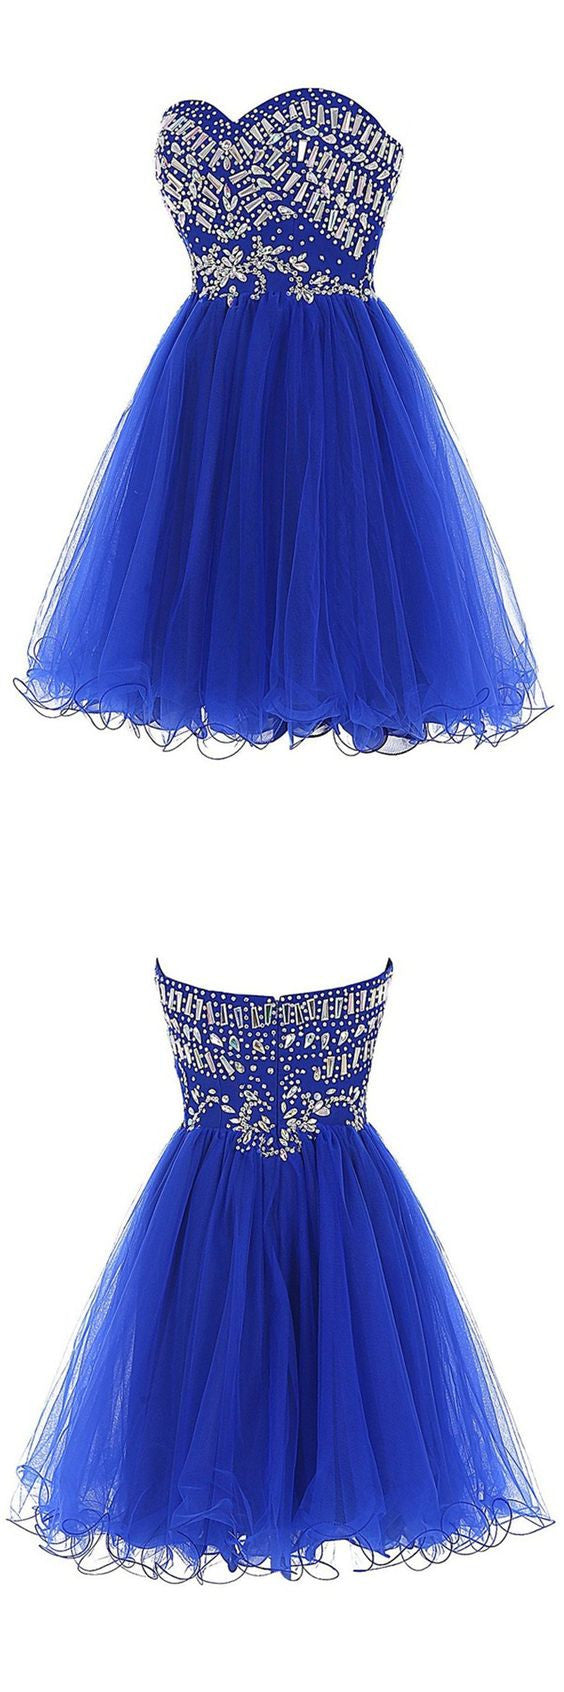 Short Beading Homecoming Dress , Short Prom Dress, PDS0040